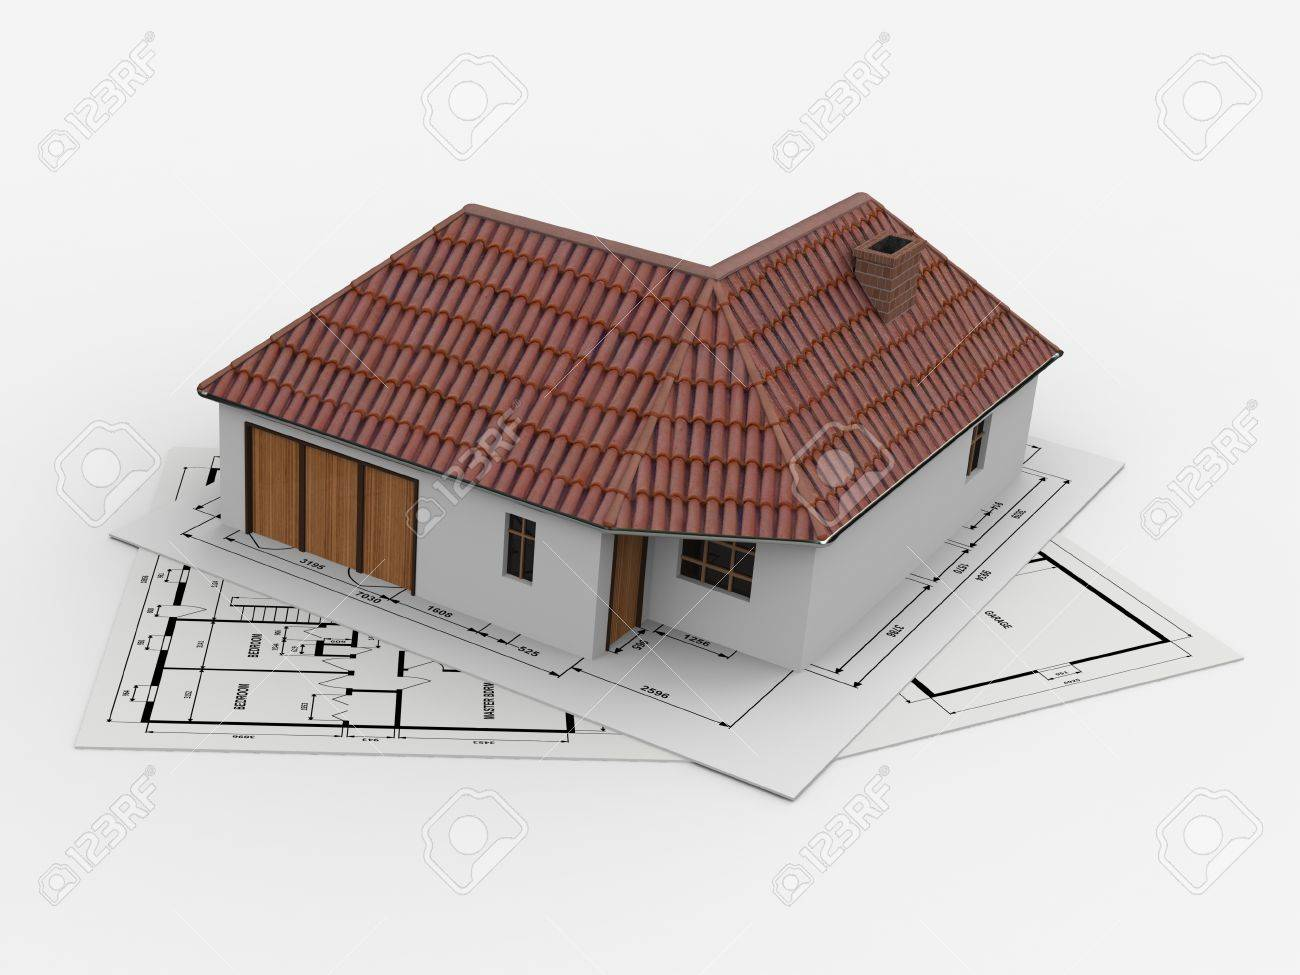 Project for a small house plans for the building on which the house is encouraged